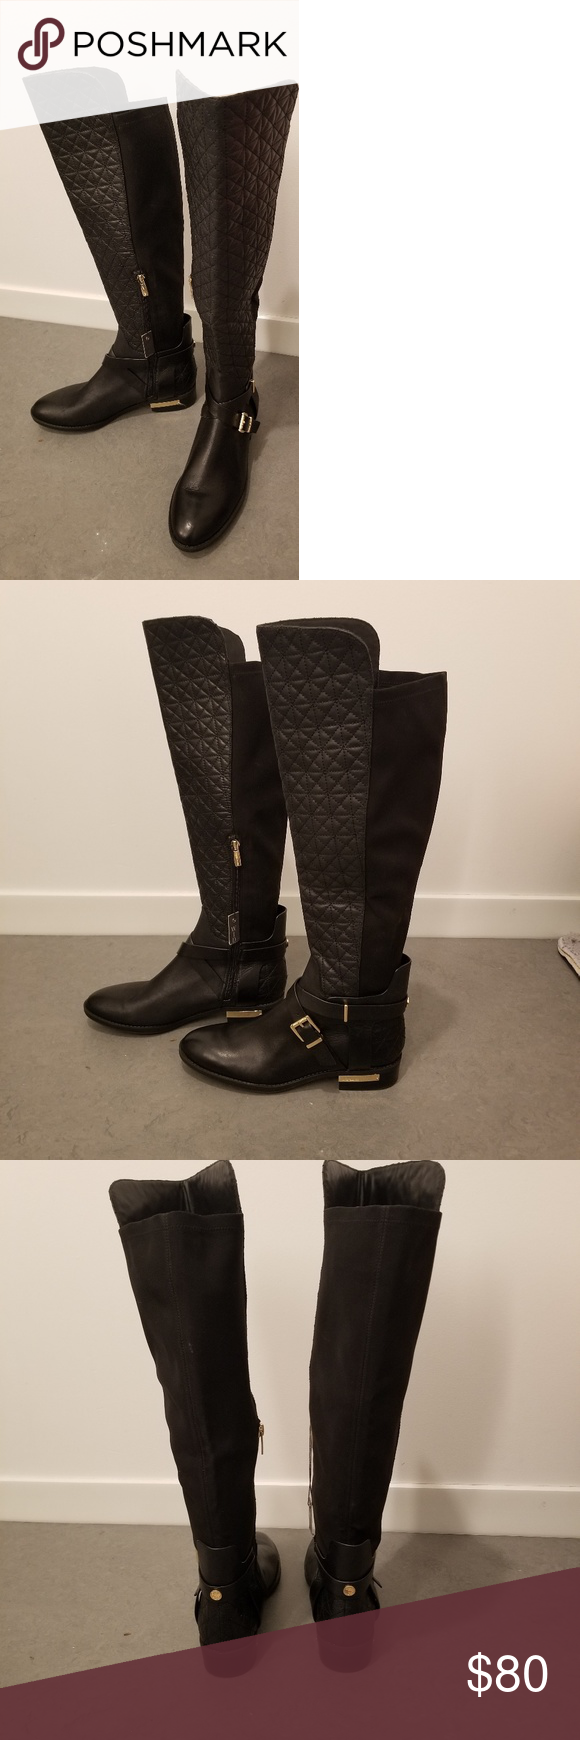 vince camuto tall dress boots